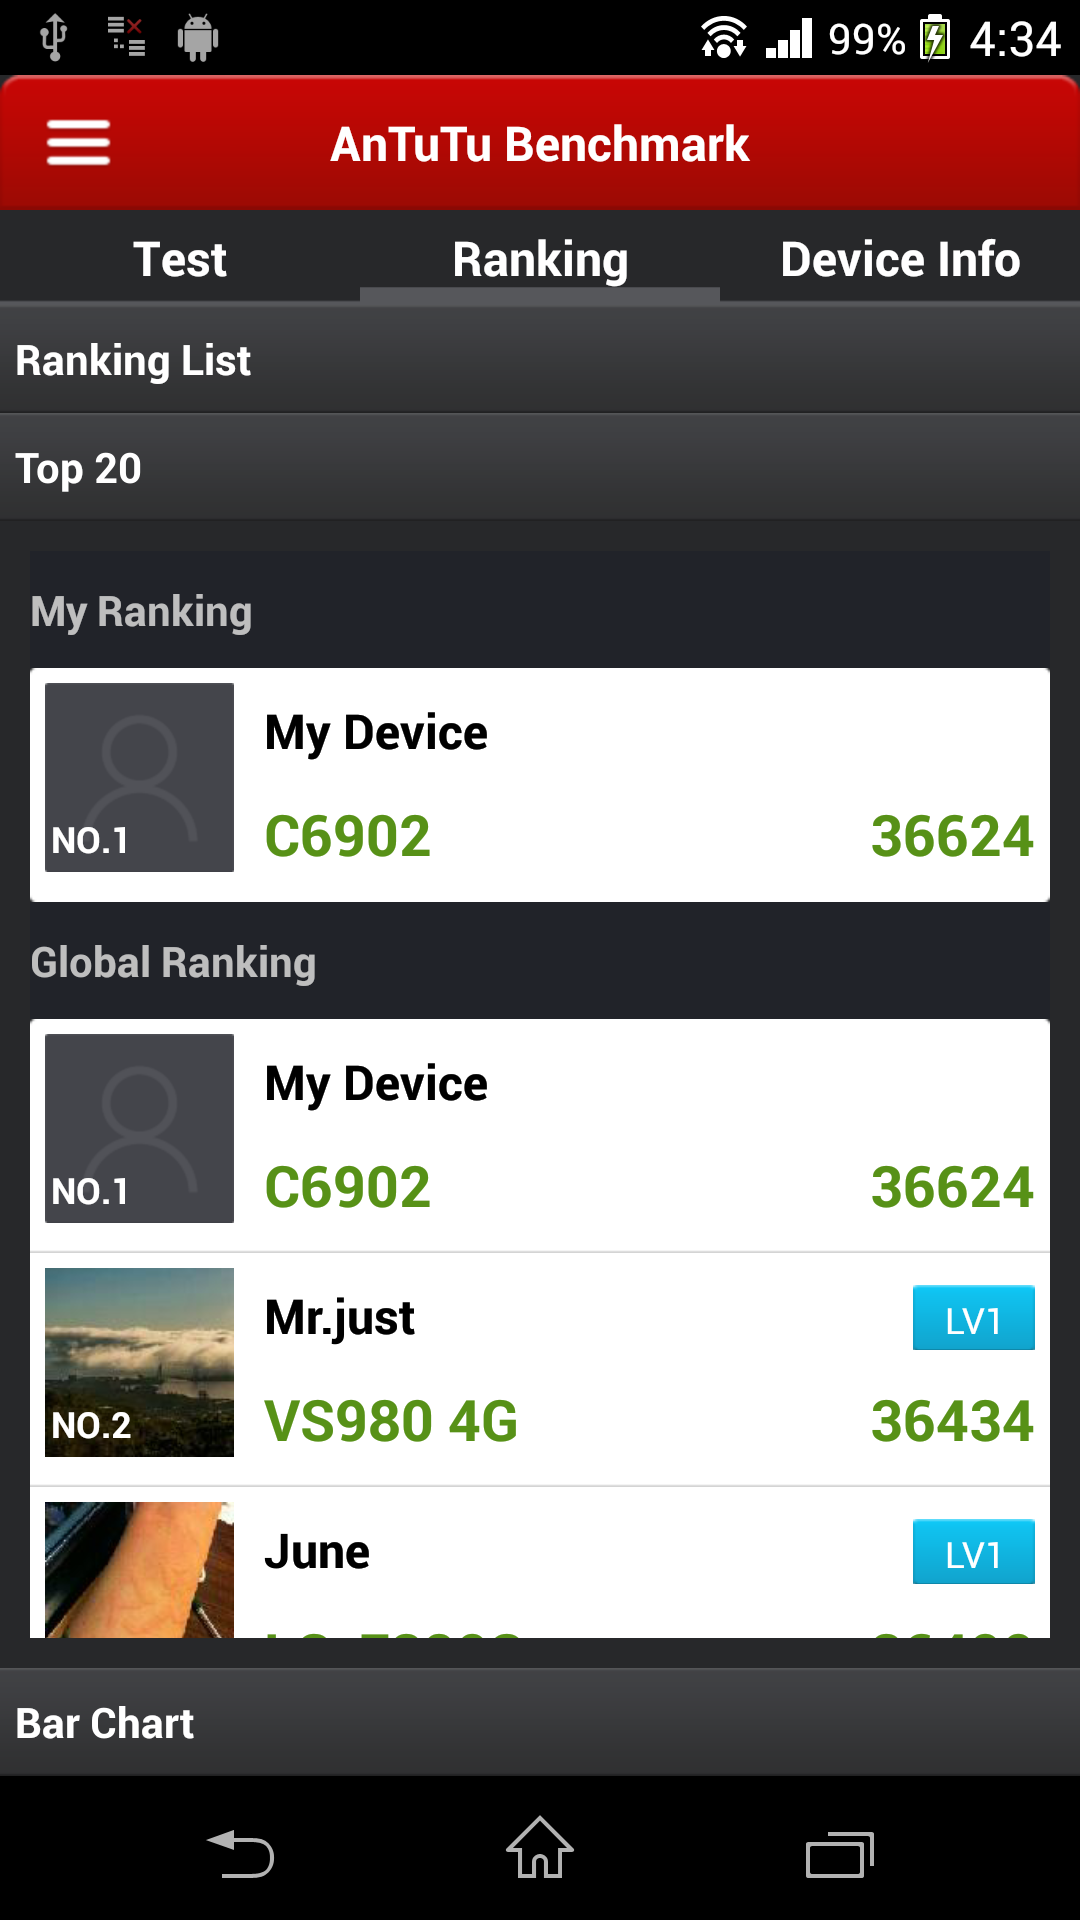 RT @SonyXperiaDev: RT @doomlord_xda: New record on AnTuTu!!! @sonyxperia @SonyXperiaDev @XperiaBlog @Snapdragon @xdadevelopers http://t.co/…